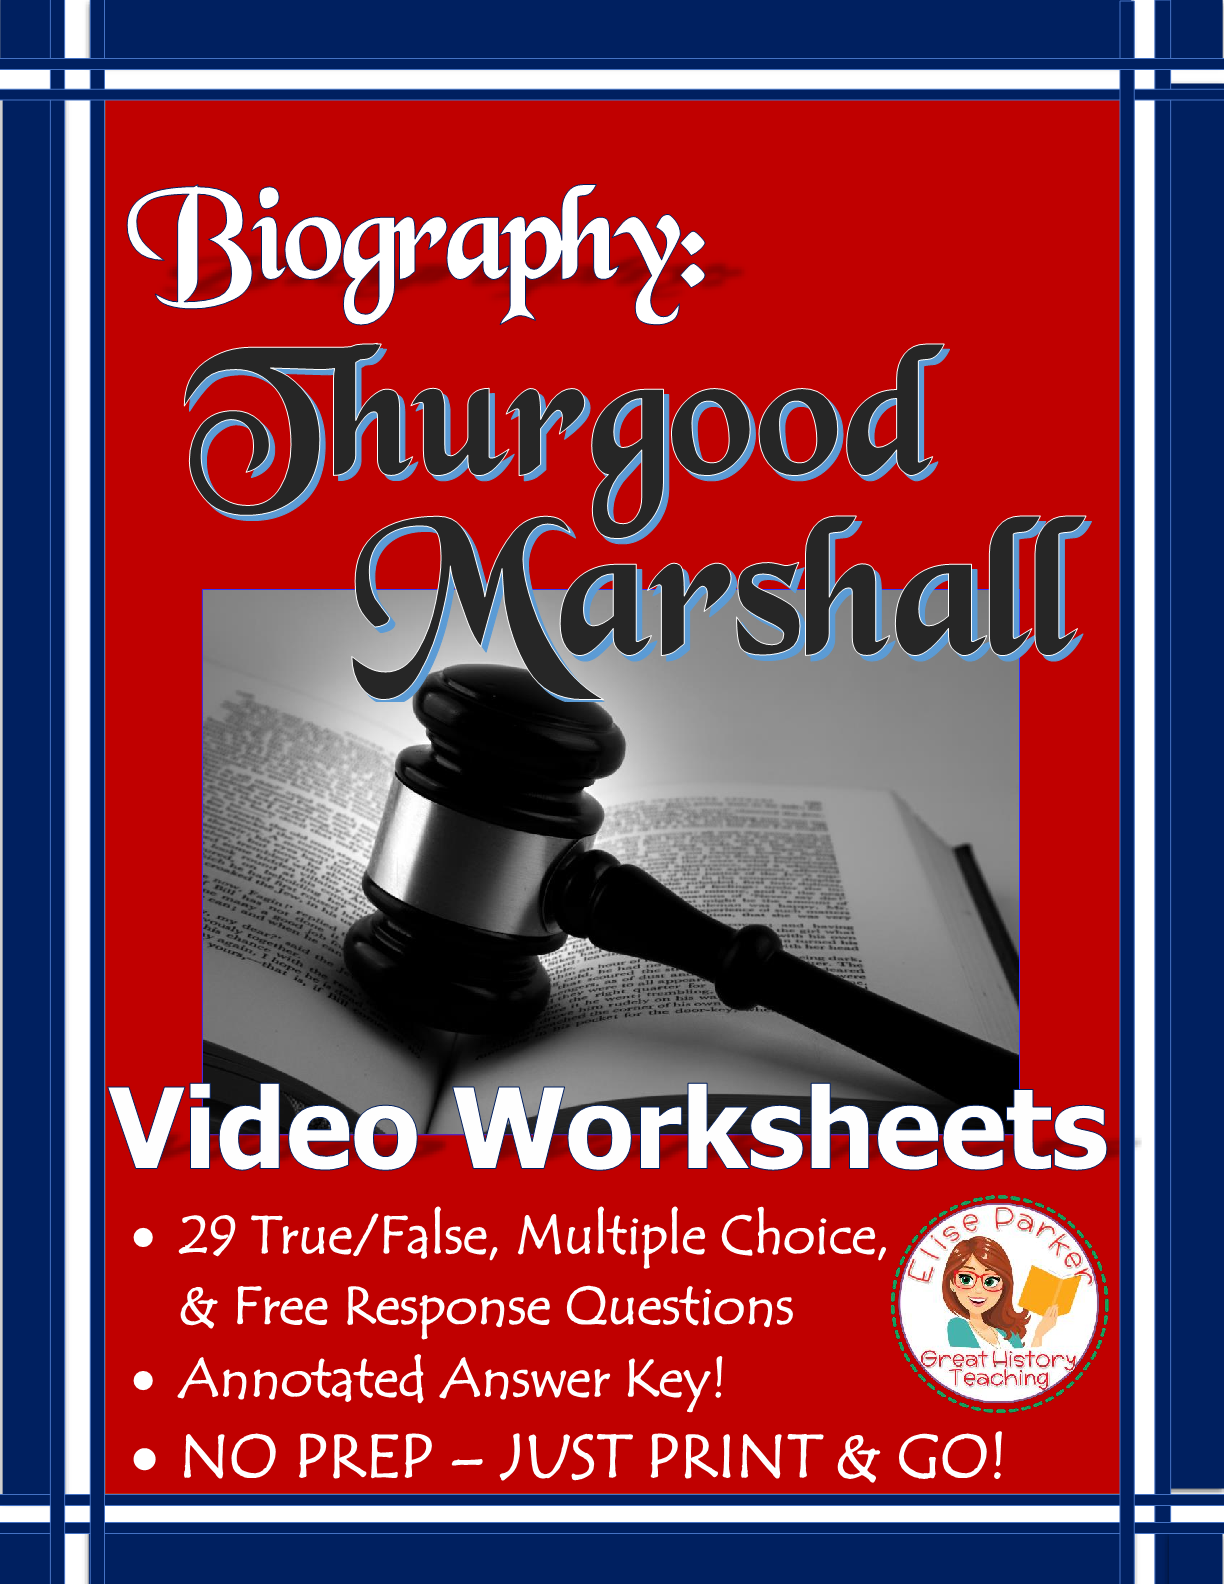 Thurgood Marshall Biography Video Worksheets